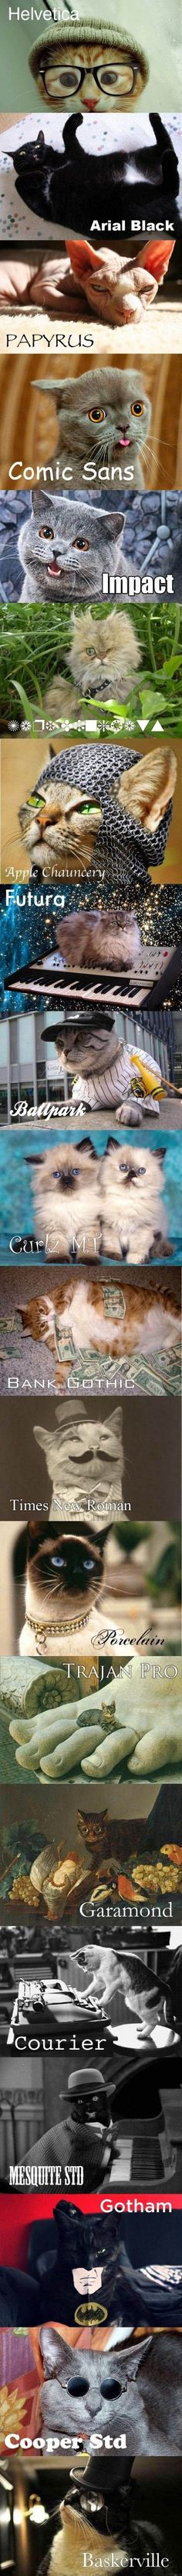 Cats and fonts